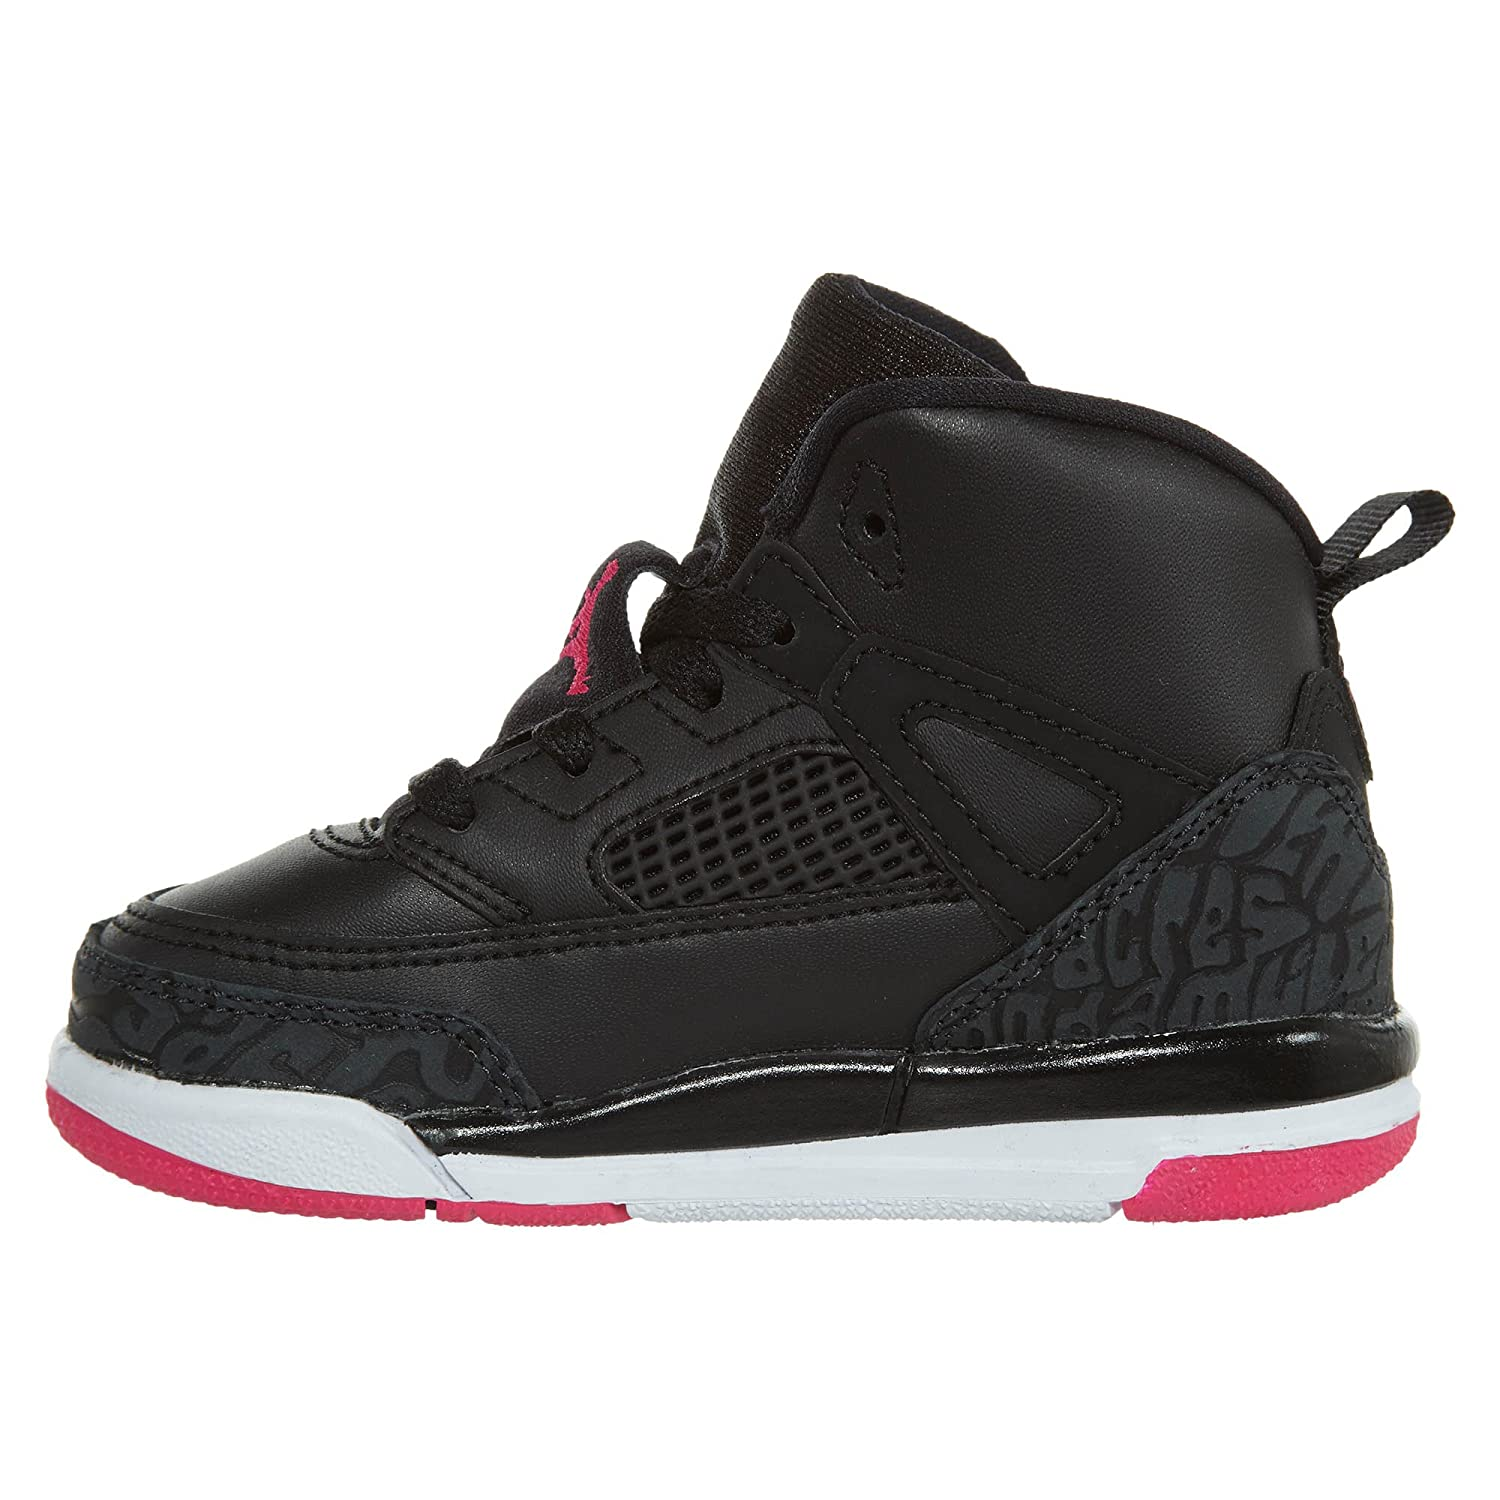 half off 89d56 66ac2 Amazon.com  Jordan Spizike GT Toddler s Running Shoe Black Deadly Pink- Anthracite 684932-029  Shoes